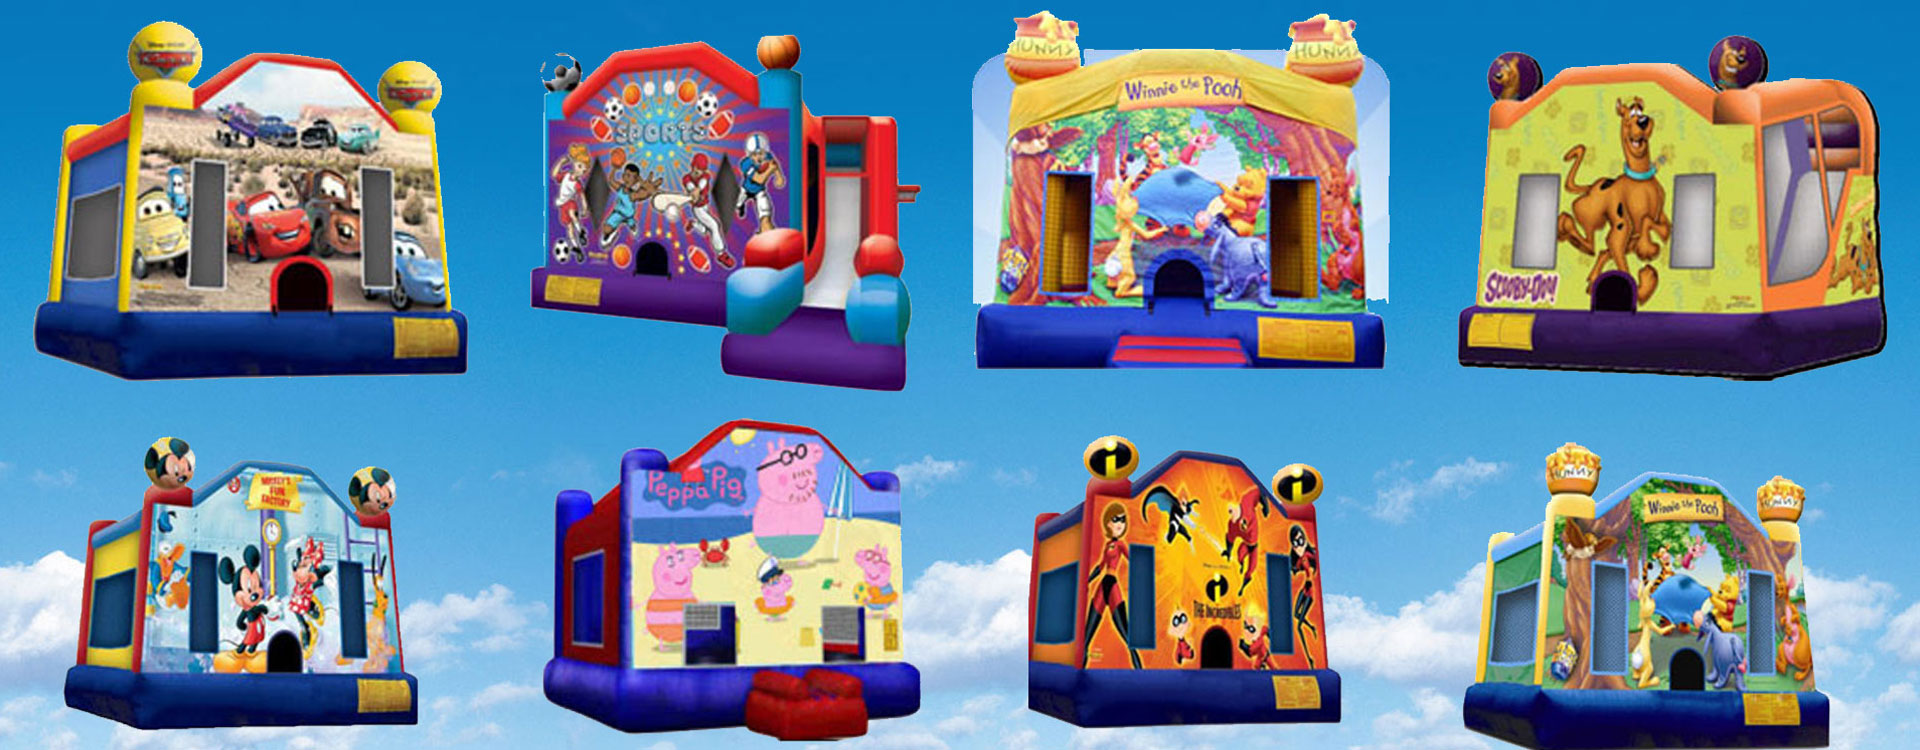 Take the Party to the New Level With Jumping Castle Hire in Melbourne